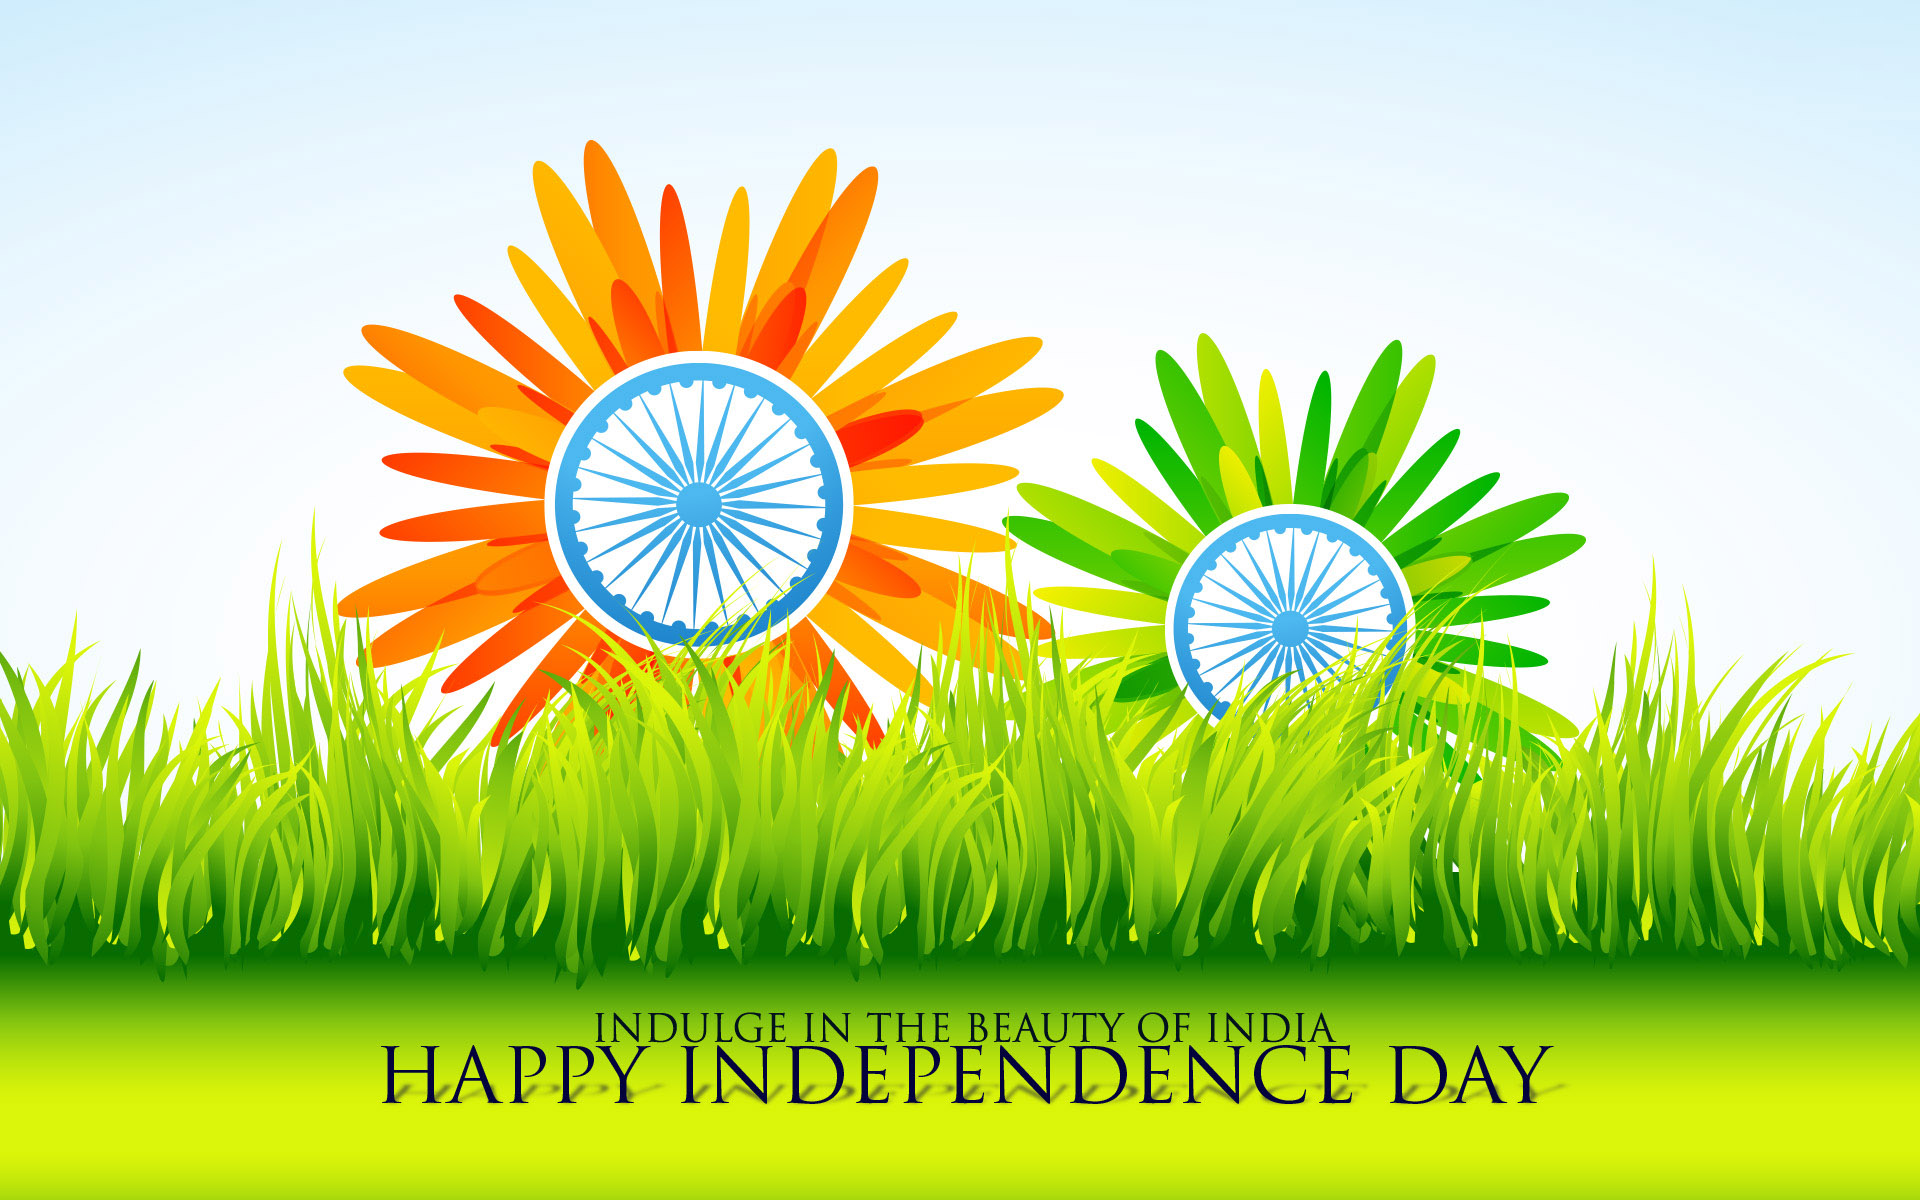 40 Beautiful Indian Independence Day Wallpapers And Greeting Cards Hd